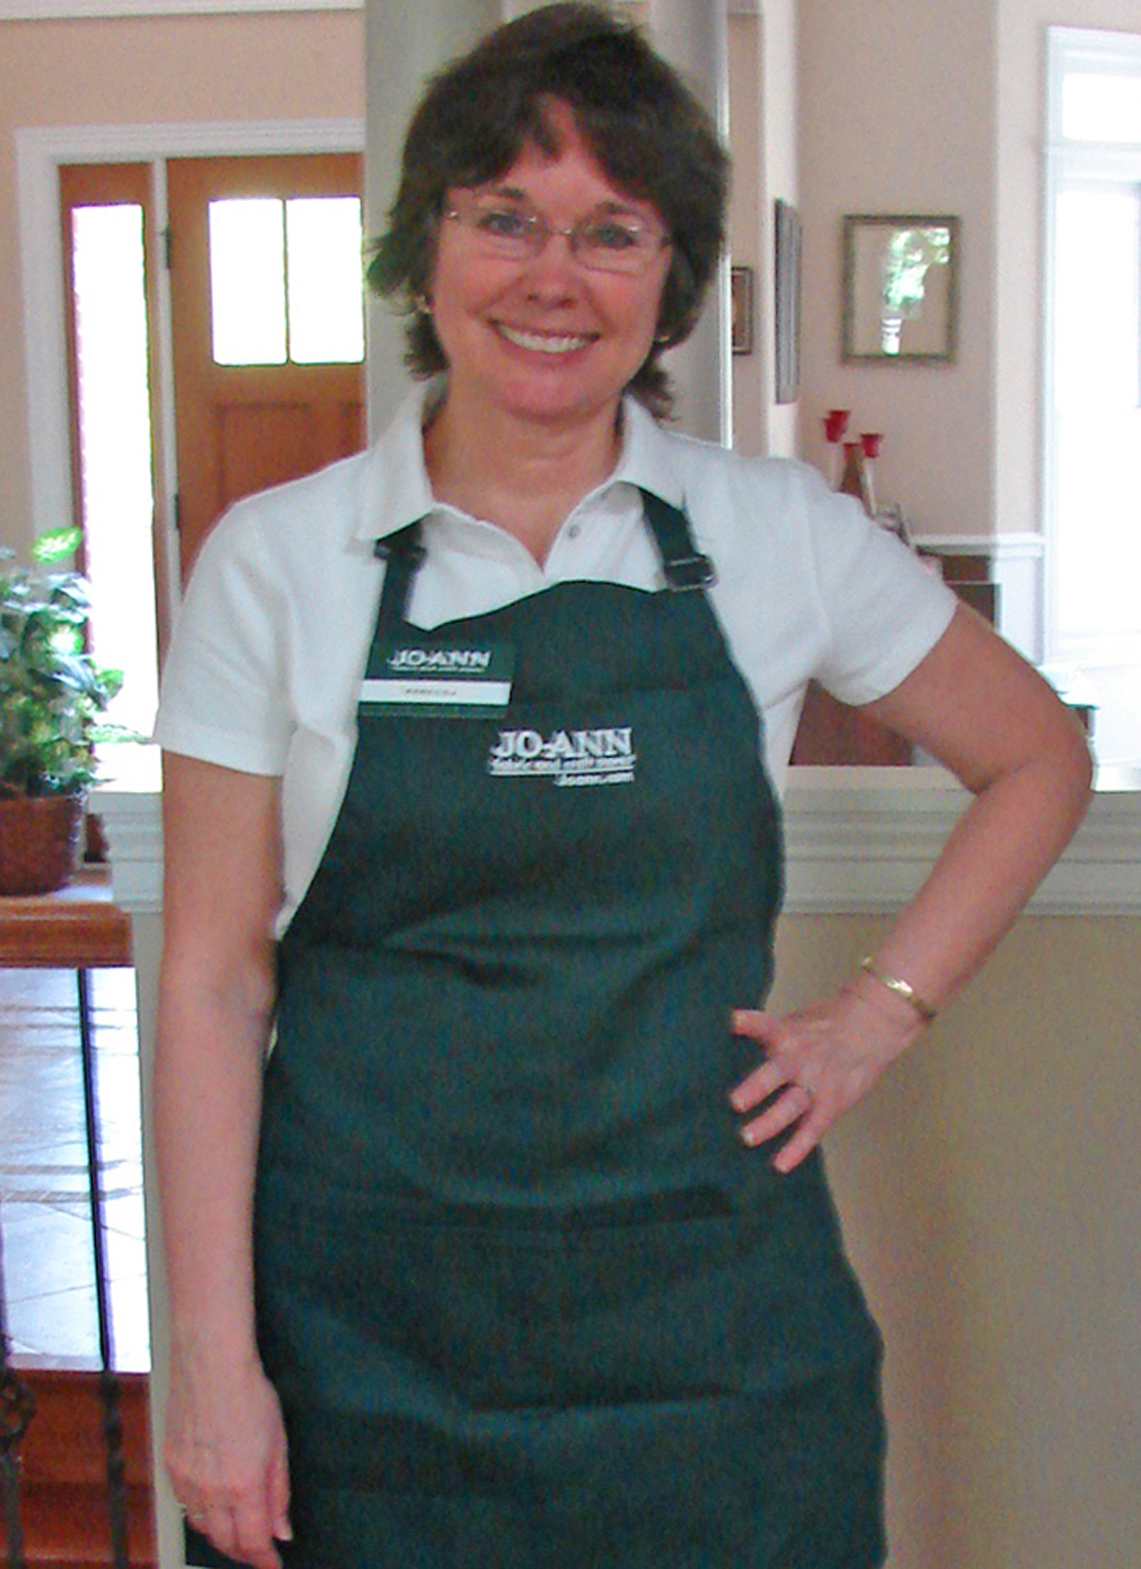 White apron joann fabrics - I Worked Four Hours Today Cutting Fabric And Batting For Customers The First Part Of The Day Was Orientation Getting My Uniform Etc And Then Learning